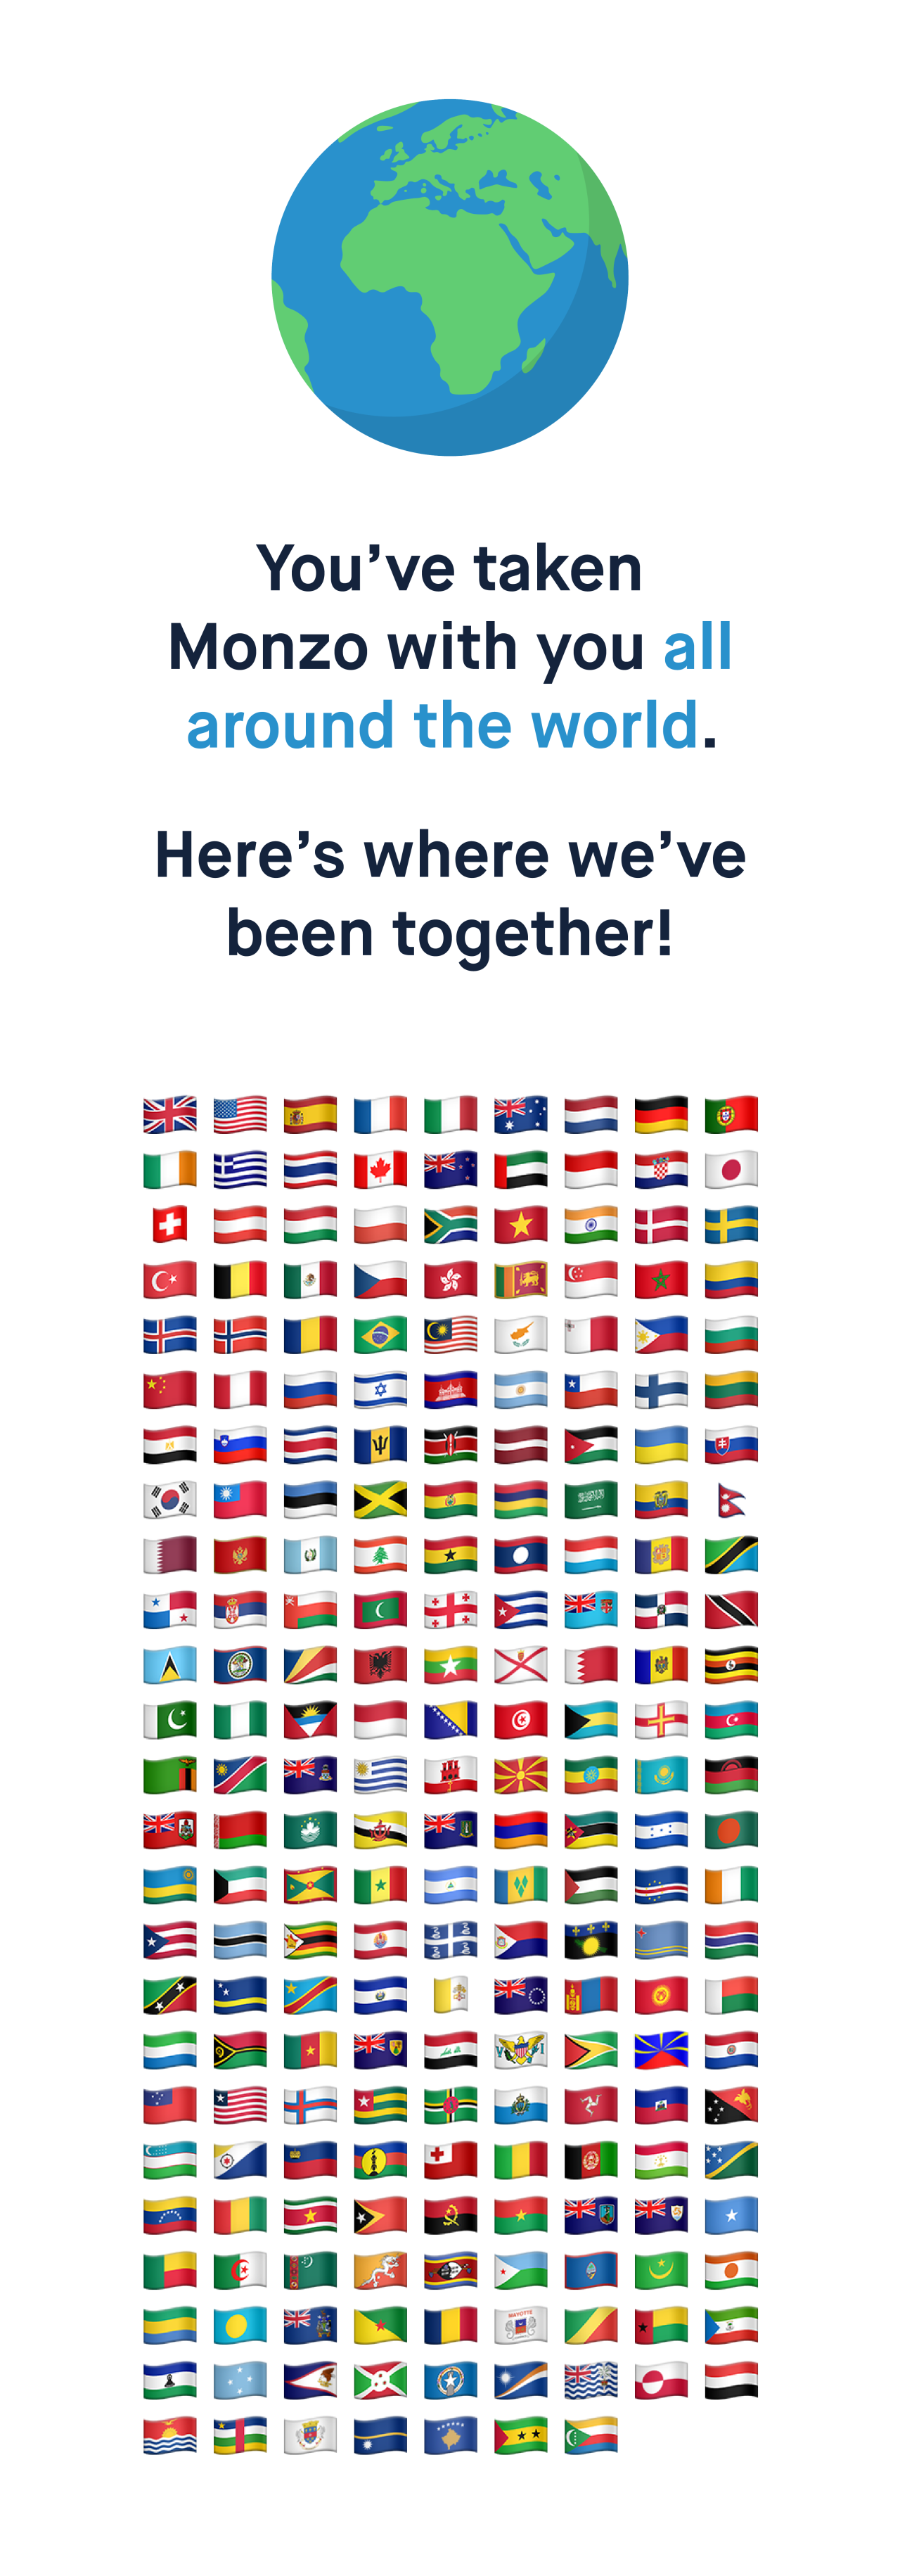 You've taken Monzo with you all around the world.